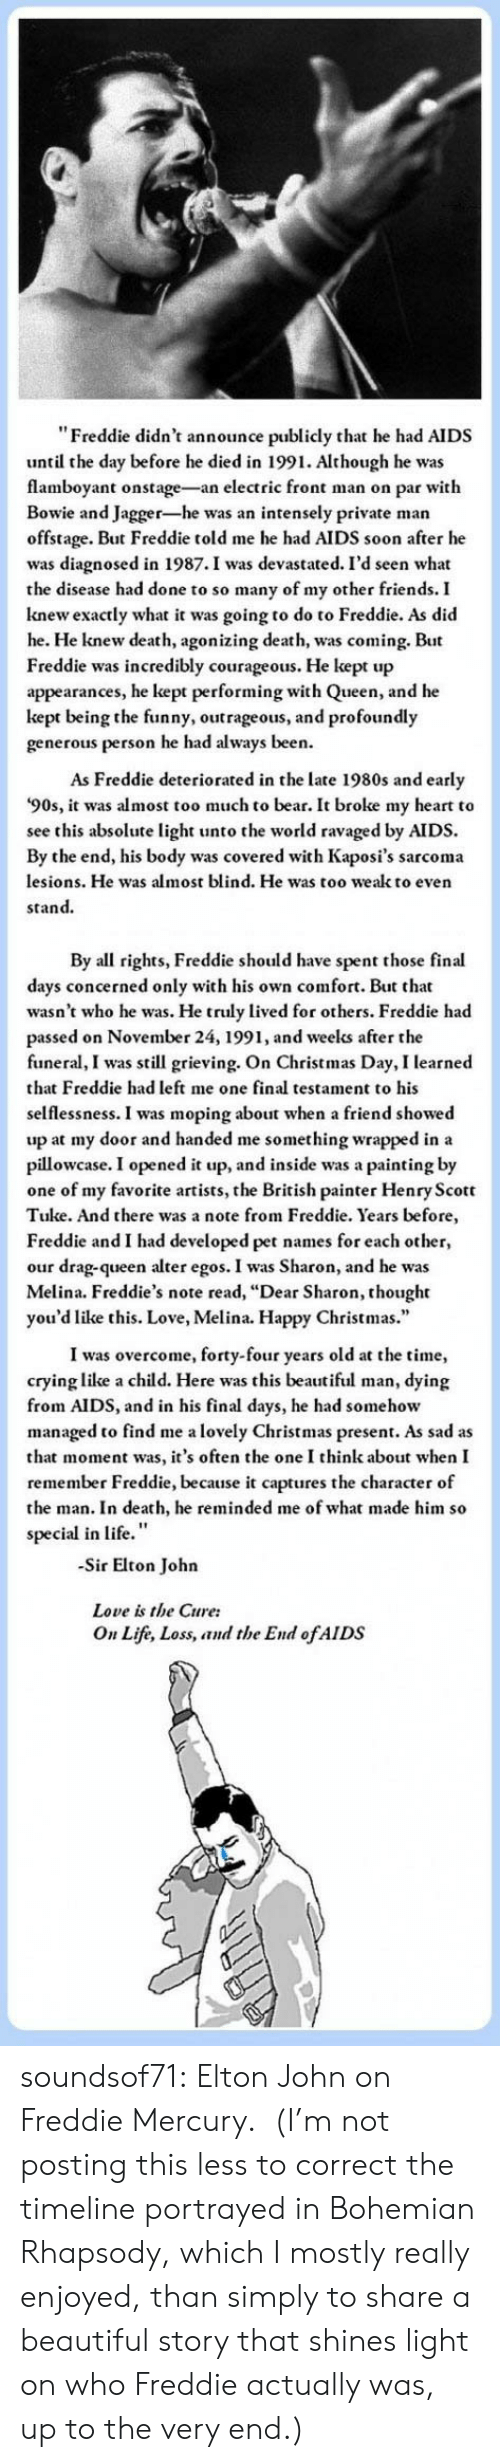 "Courageous: ""Freddie didn't announce publicly that he had AIDS  until the day before he died in 1991. Although he was  flamboyant onstage-an electric front man on par with  Bowie and Jagger-he was an intensely private man  offstage. But Freddie told me he had AIDS soon after he  was diagnosed in 1987.I was devastated. I'd seen what  the disease had done to so many of my other friends. I  knew exactly what it was going to do to Freddie. As did  he. He knew death, agonizing death, was coming. But  Freddie was incredibly courageous. He kept up  appearances, he kept performing with Queen, and he  kept being the funny, outrageous, and profoundly  generous person he had always been.  As Freddie deteriorated in the late 1980s and early  '90s, it was almost too much to bear. It broke my heart to  see this absolute light unto the world ravaged by AIDS.  By the end, his body was covered with Kaposi's sarcoma  lesions. He was almost blind. He was too wealk to even  stand.   By all rights, Freddie should have spent those final  days concerned only with his own comfort. But that  wasn't who he was. He truly lived for others. Freddie had  passed on November 24, 1991, and weelks after the  funeral, I was still grieving. On Christmas Day, I learned  that Freddie had left me one final testament to his  selflessness. I was moping about when a friend showed  up at my door and handed me something wrapped in a  pillowcase. I opened it up, and inside was a painting by  one of my favorite artists, the British painter Henry Scott  Tuke. And there was a note from Freddie. Years before  Freddie and I had developed pet names for each other,  our drag-queen alter egos. I was Sharon, and he was  Melina. Freddie's note read, ""Dear Sharon, thought  you'd like this. Love, Melina. Happy Christmas.""  I was overcome, forty-four years old at the time,  crying like a child. Here was this beautiful man, dying  from AIDS, and in his final days, he had somehow  managed to find me a lovely Christmas present. As sad as  that moment was, it's often the one I think about when I  remember Freddie, because it captures the character of  the man. In death, he reminded me of what made him so  special in life.""  -Sir Elton John  Love is the Cure:  On Life, Loss, and the End ofAIDS soundsof71:  Elton John on Freddie Mercury.  (I'm not posting this less to correct the timeline portrayed in Bohemian Rhapsody, which I mostly really enjoyed, than simply to share a beautiful story that shines light on who Freddie actually was, up to the very end.)"